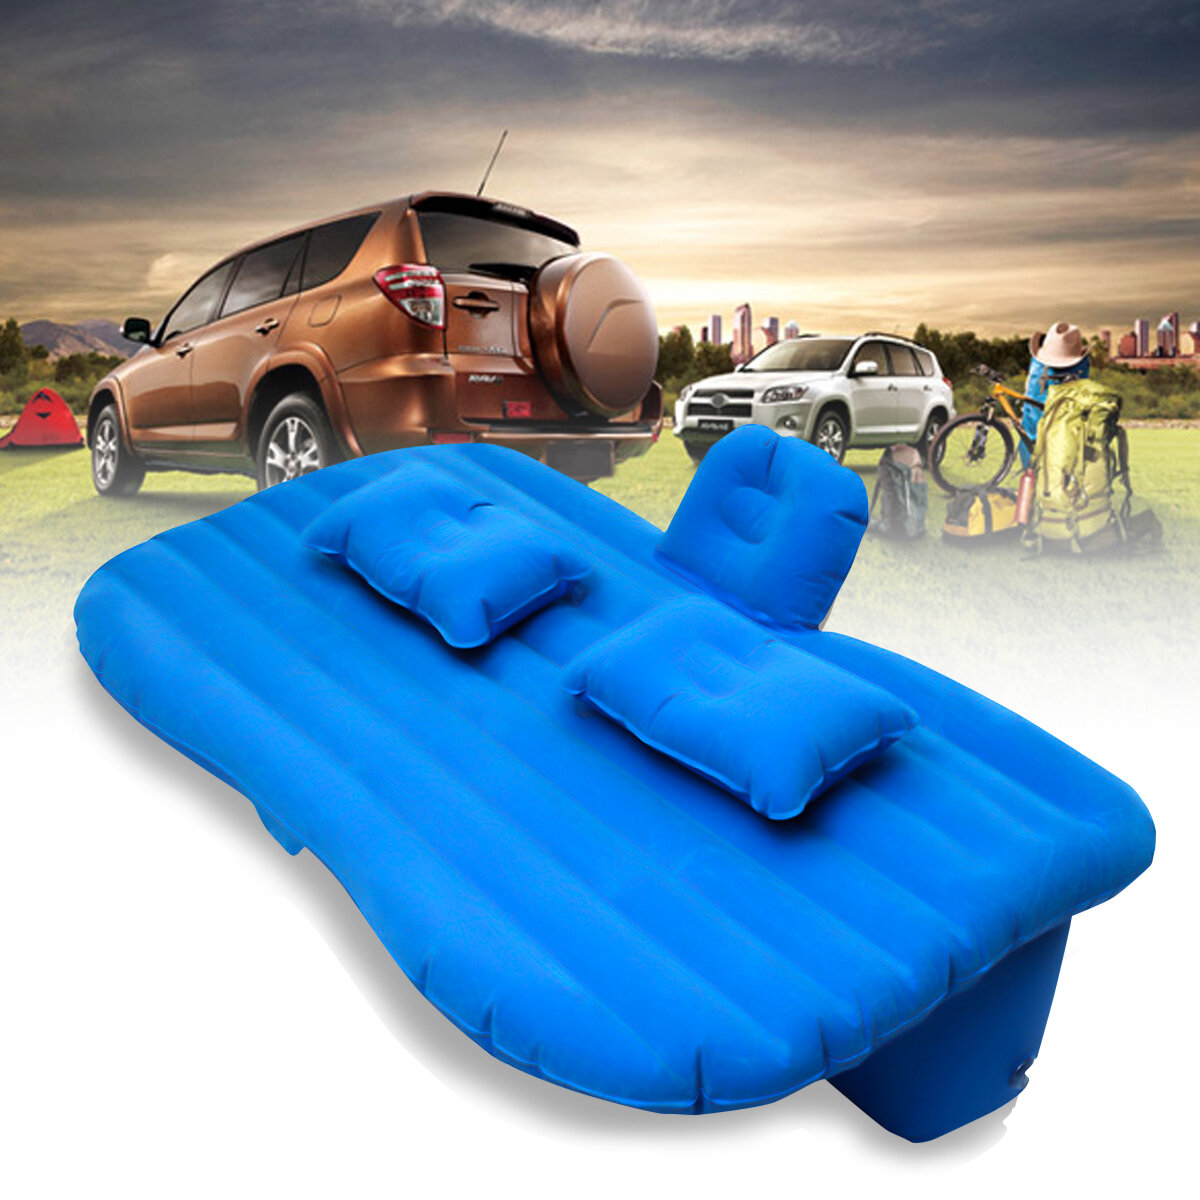 PVC Trunk Car Inflatable Mattress Outdoor Travel Sleeping Bed Lazy Sofa Air Bed for SUV фото